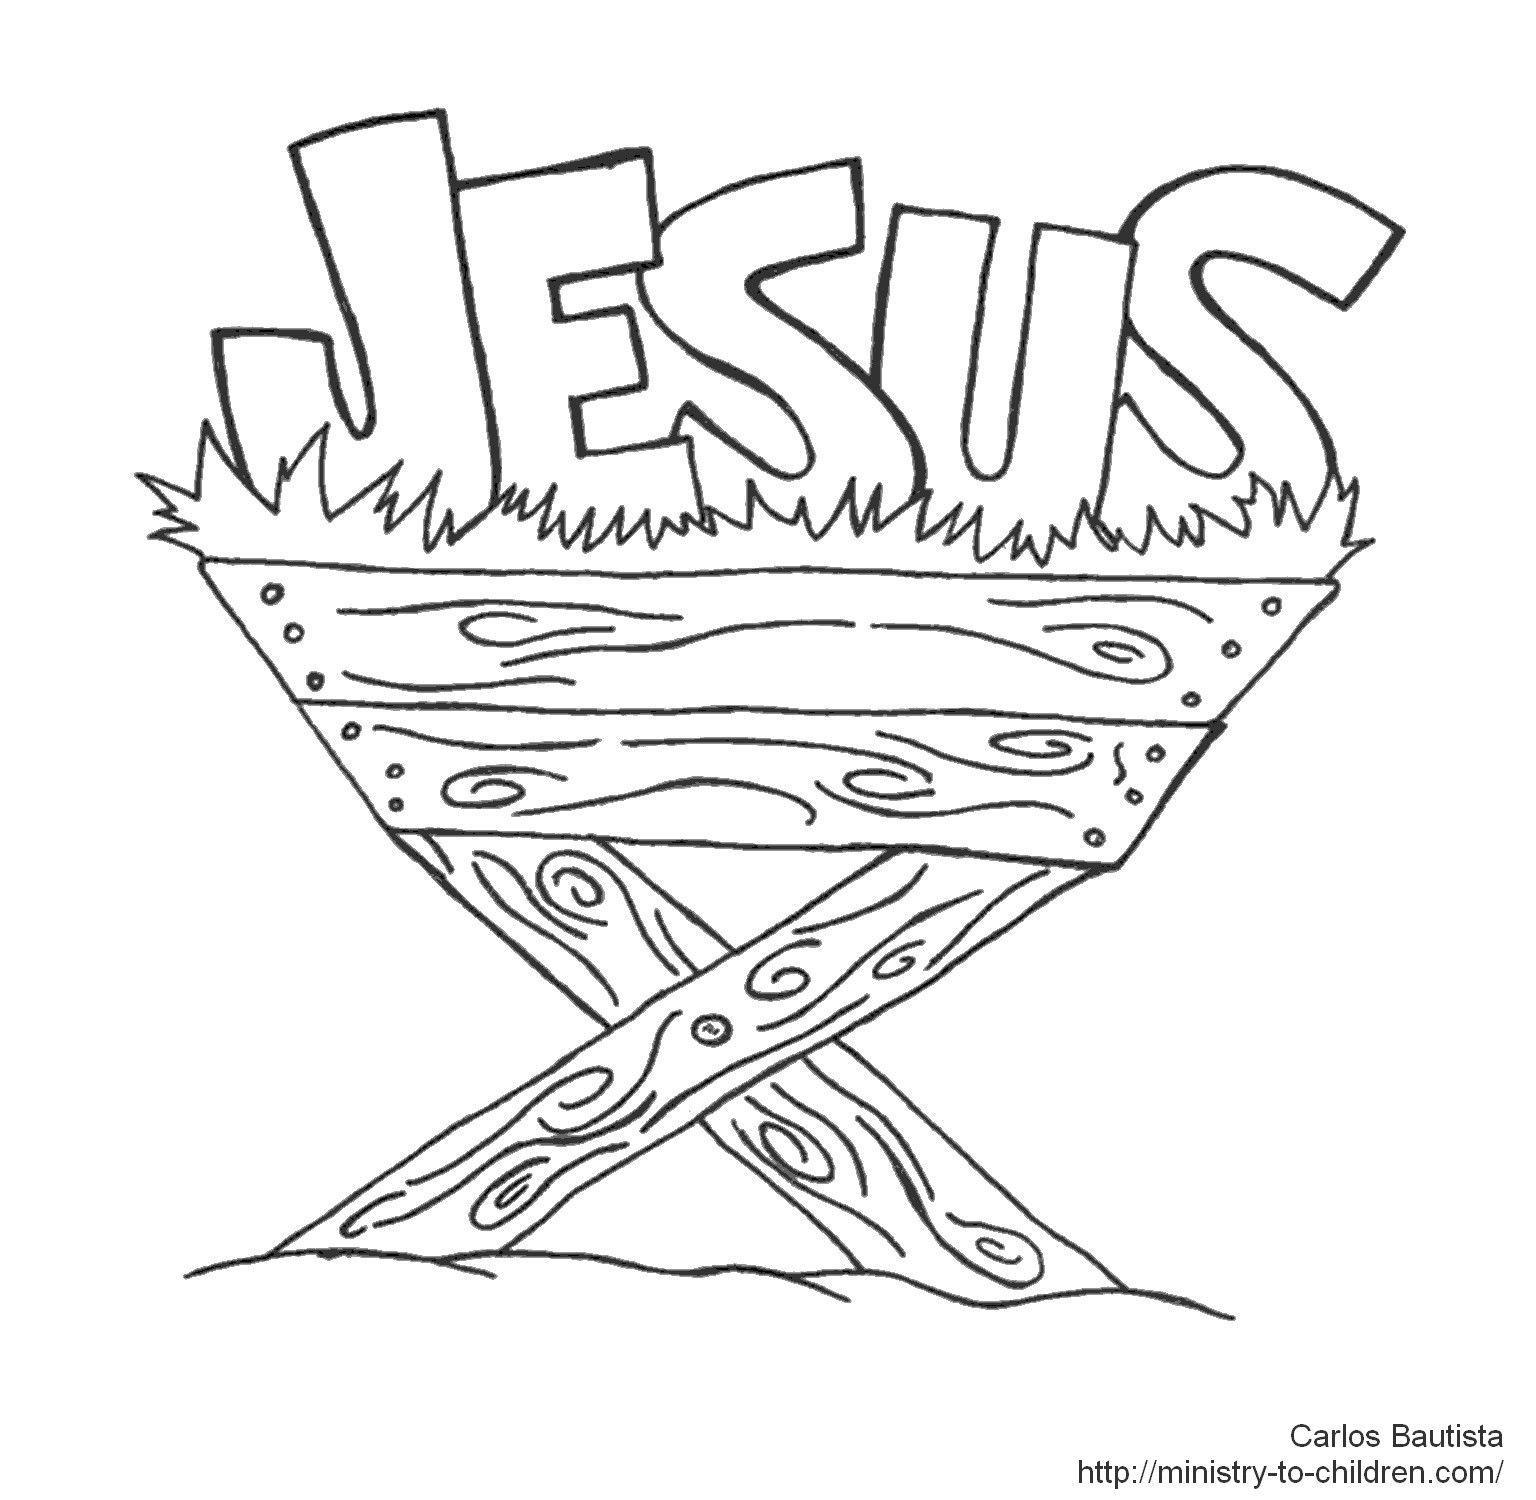 free christian christmas coloring pages printable jesus in manger coloring page jesus coloring pages christmas free printable christian pages coloring